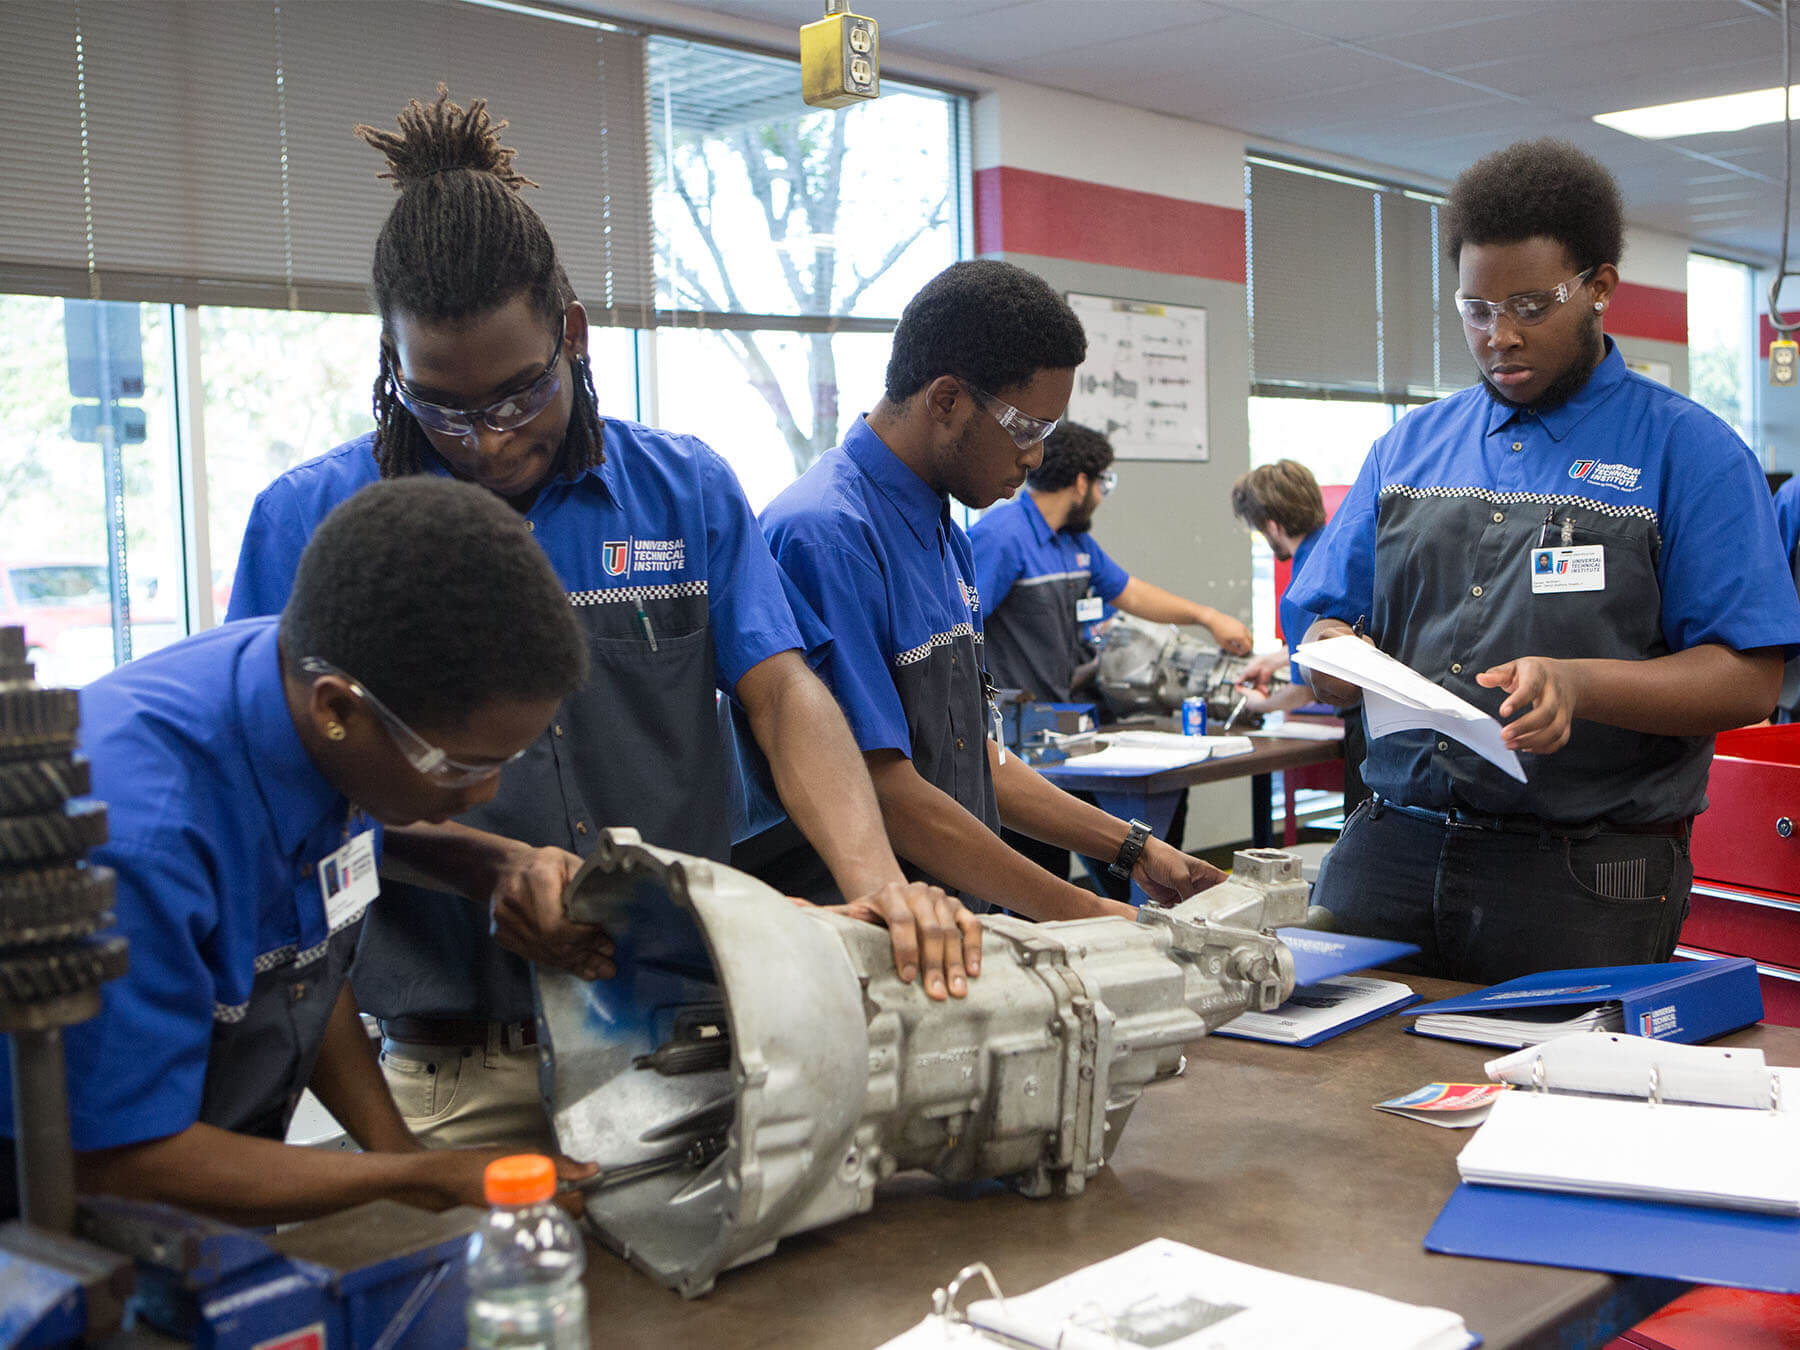 UTI students working on an engine in the classroom